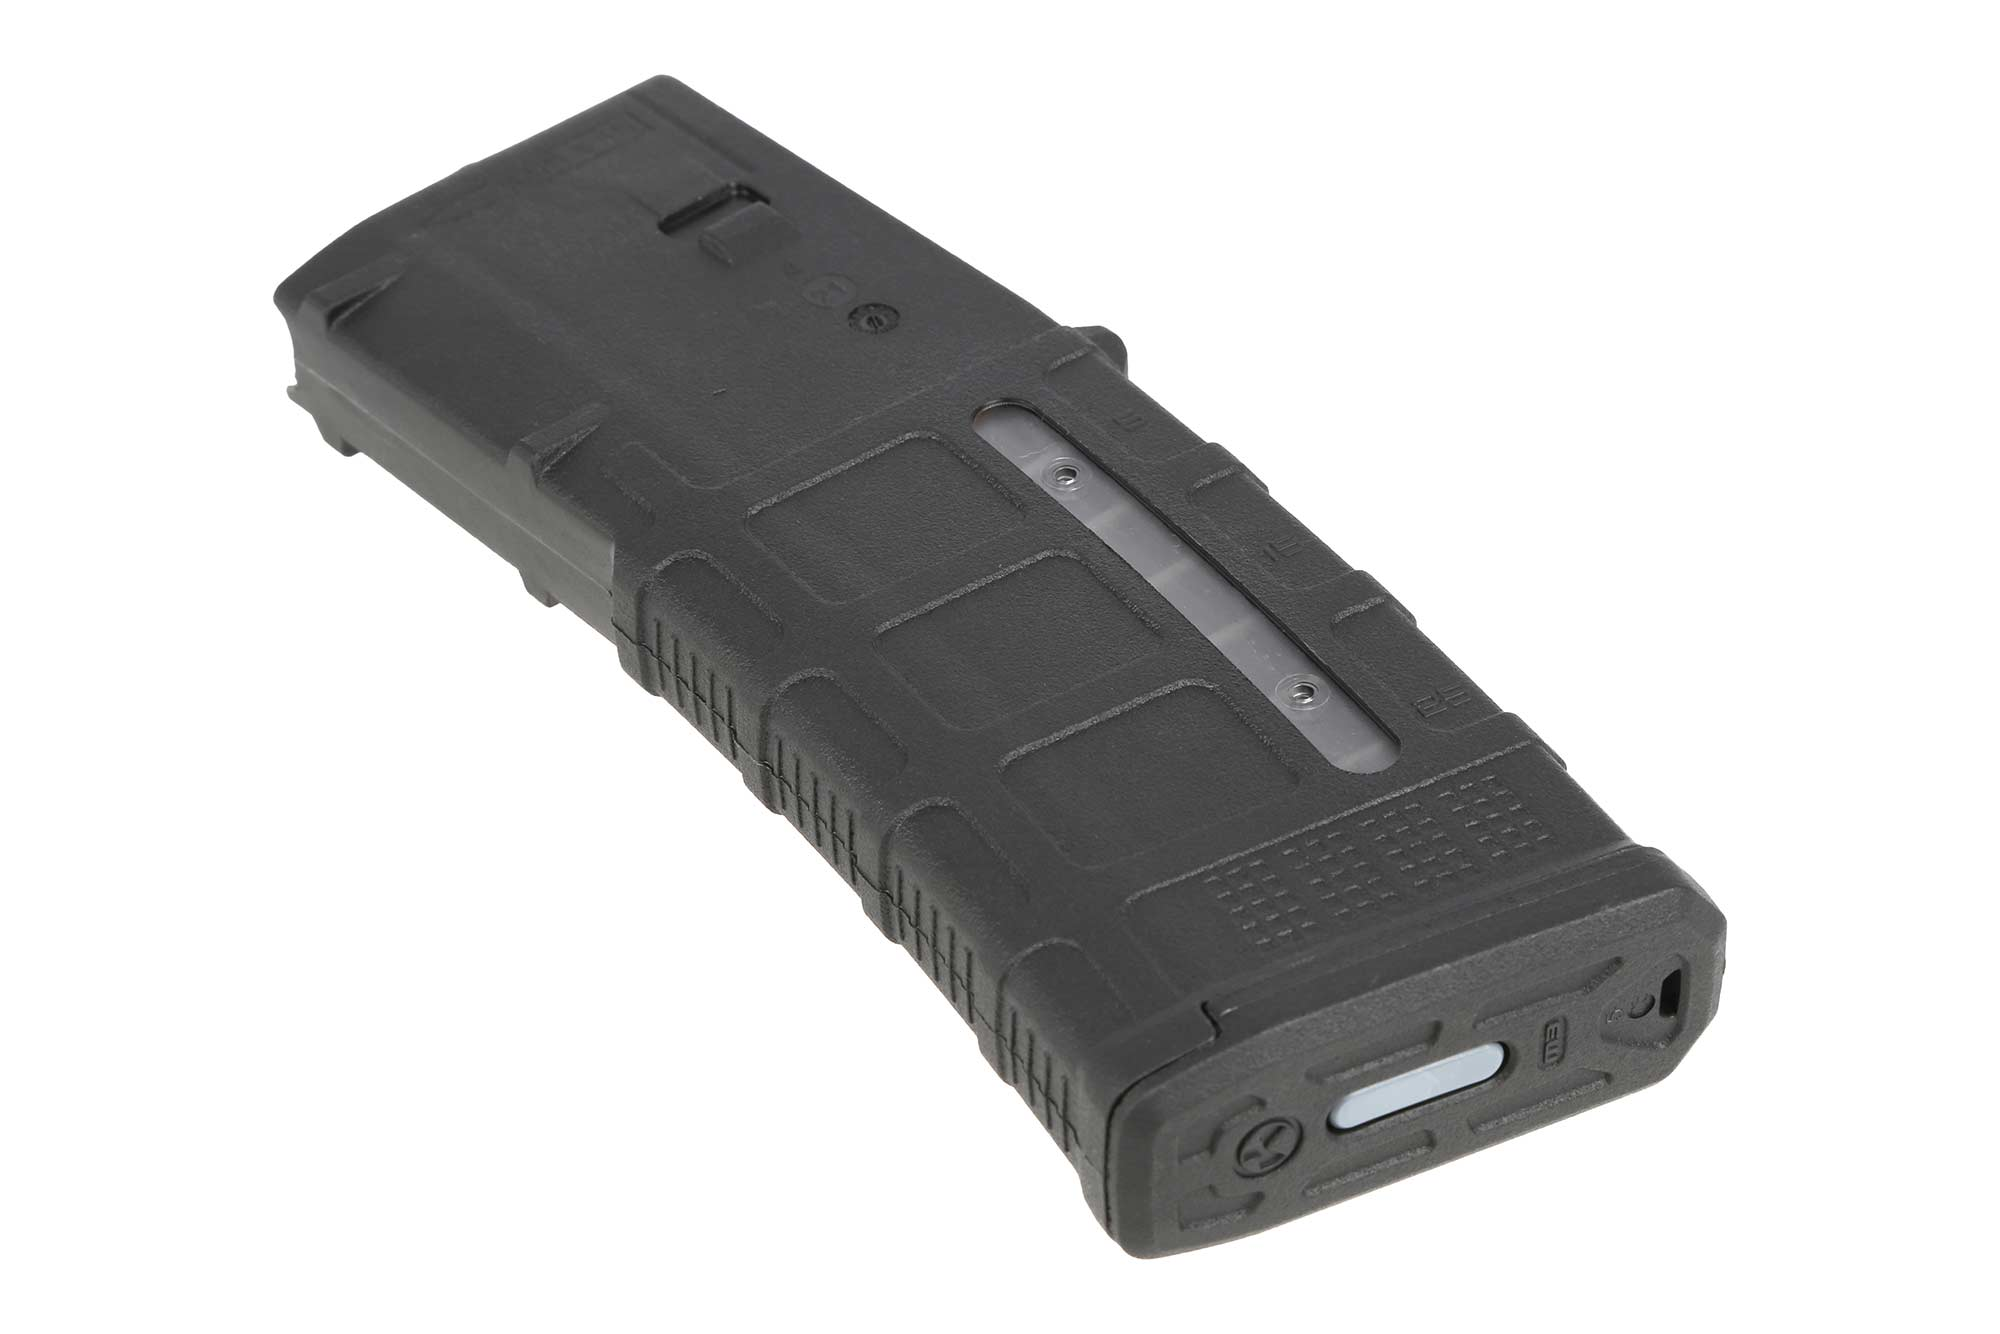 The PMAG 30 AR-15 M4 GEN M3 5.56 NATO and .223 magpul Magazine features a clear window port for counting ammo